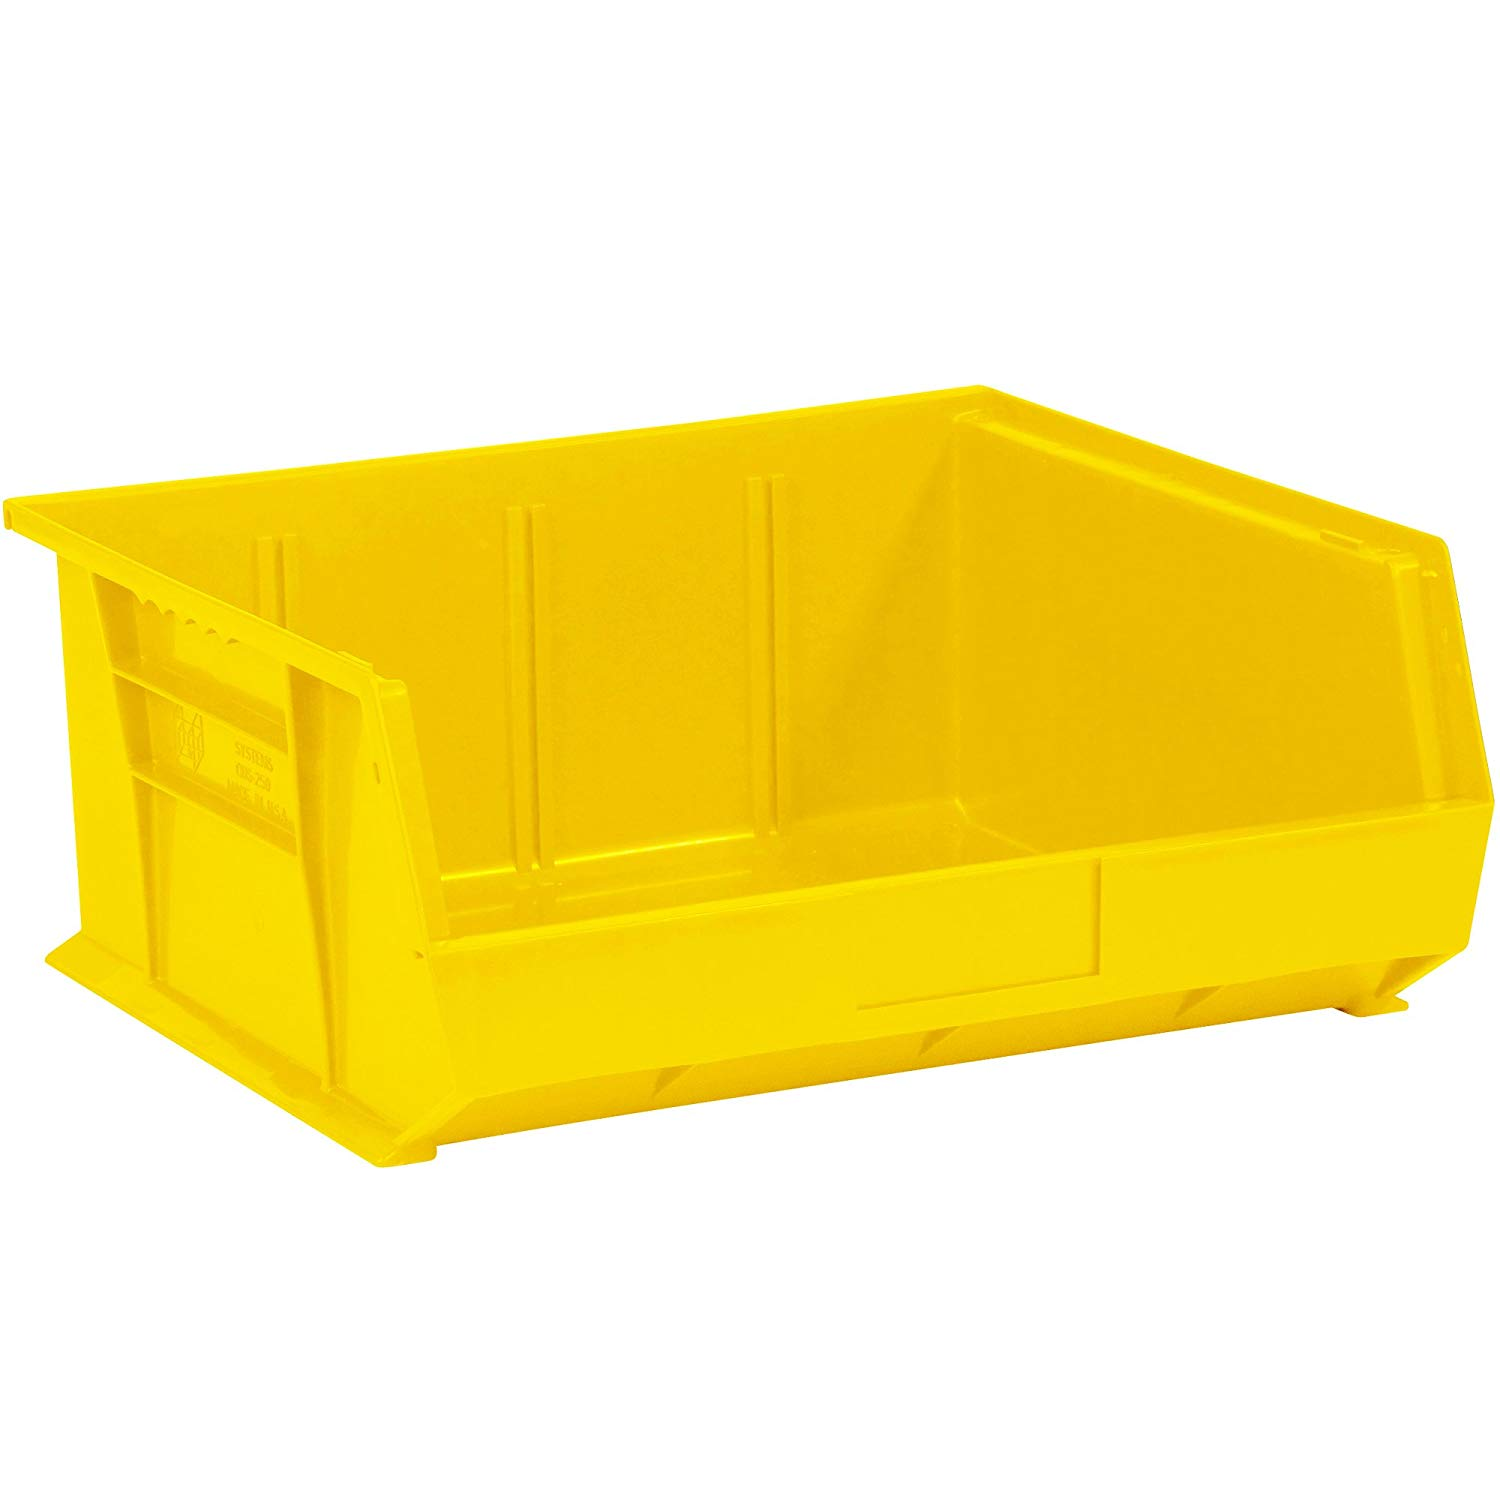 "Aviditi BINP1516Y Plastic Stack and Hang Bin Box, 14-3/4"" Length x 16-1/2"" Width x 7"" Height, Yellow (Case of 6)"